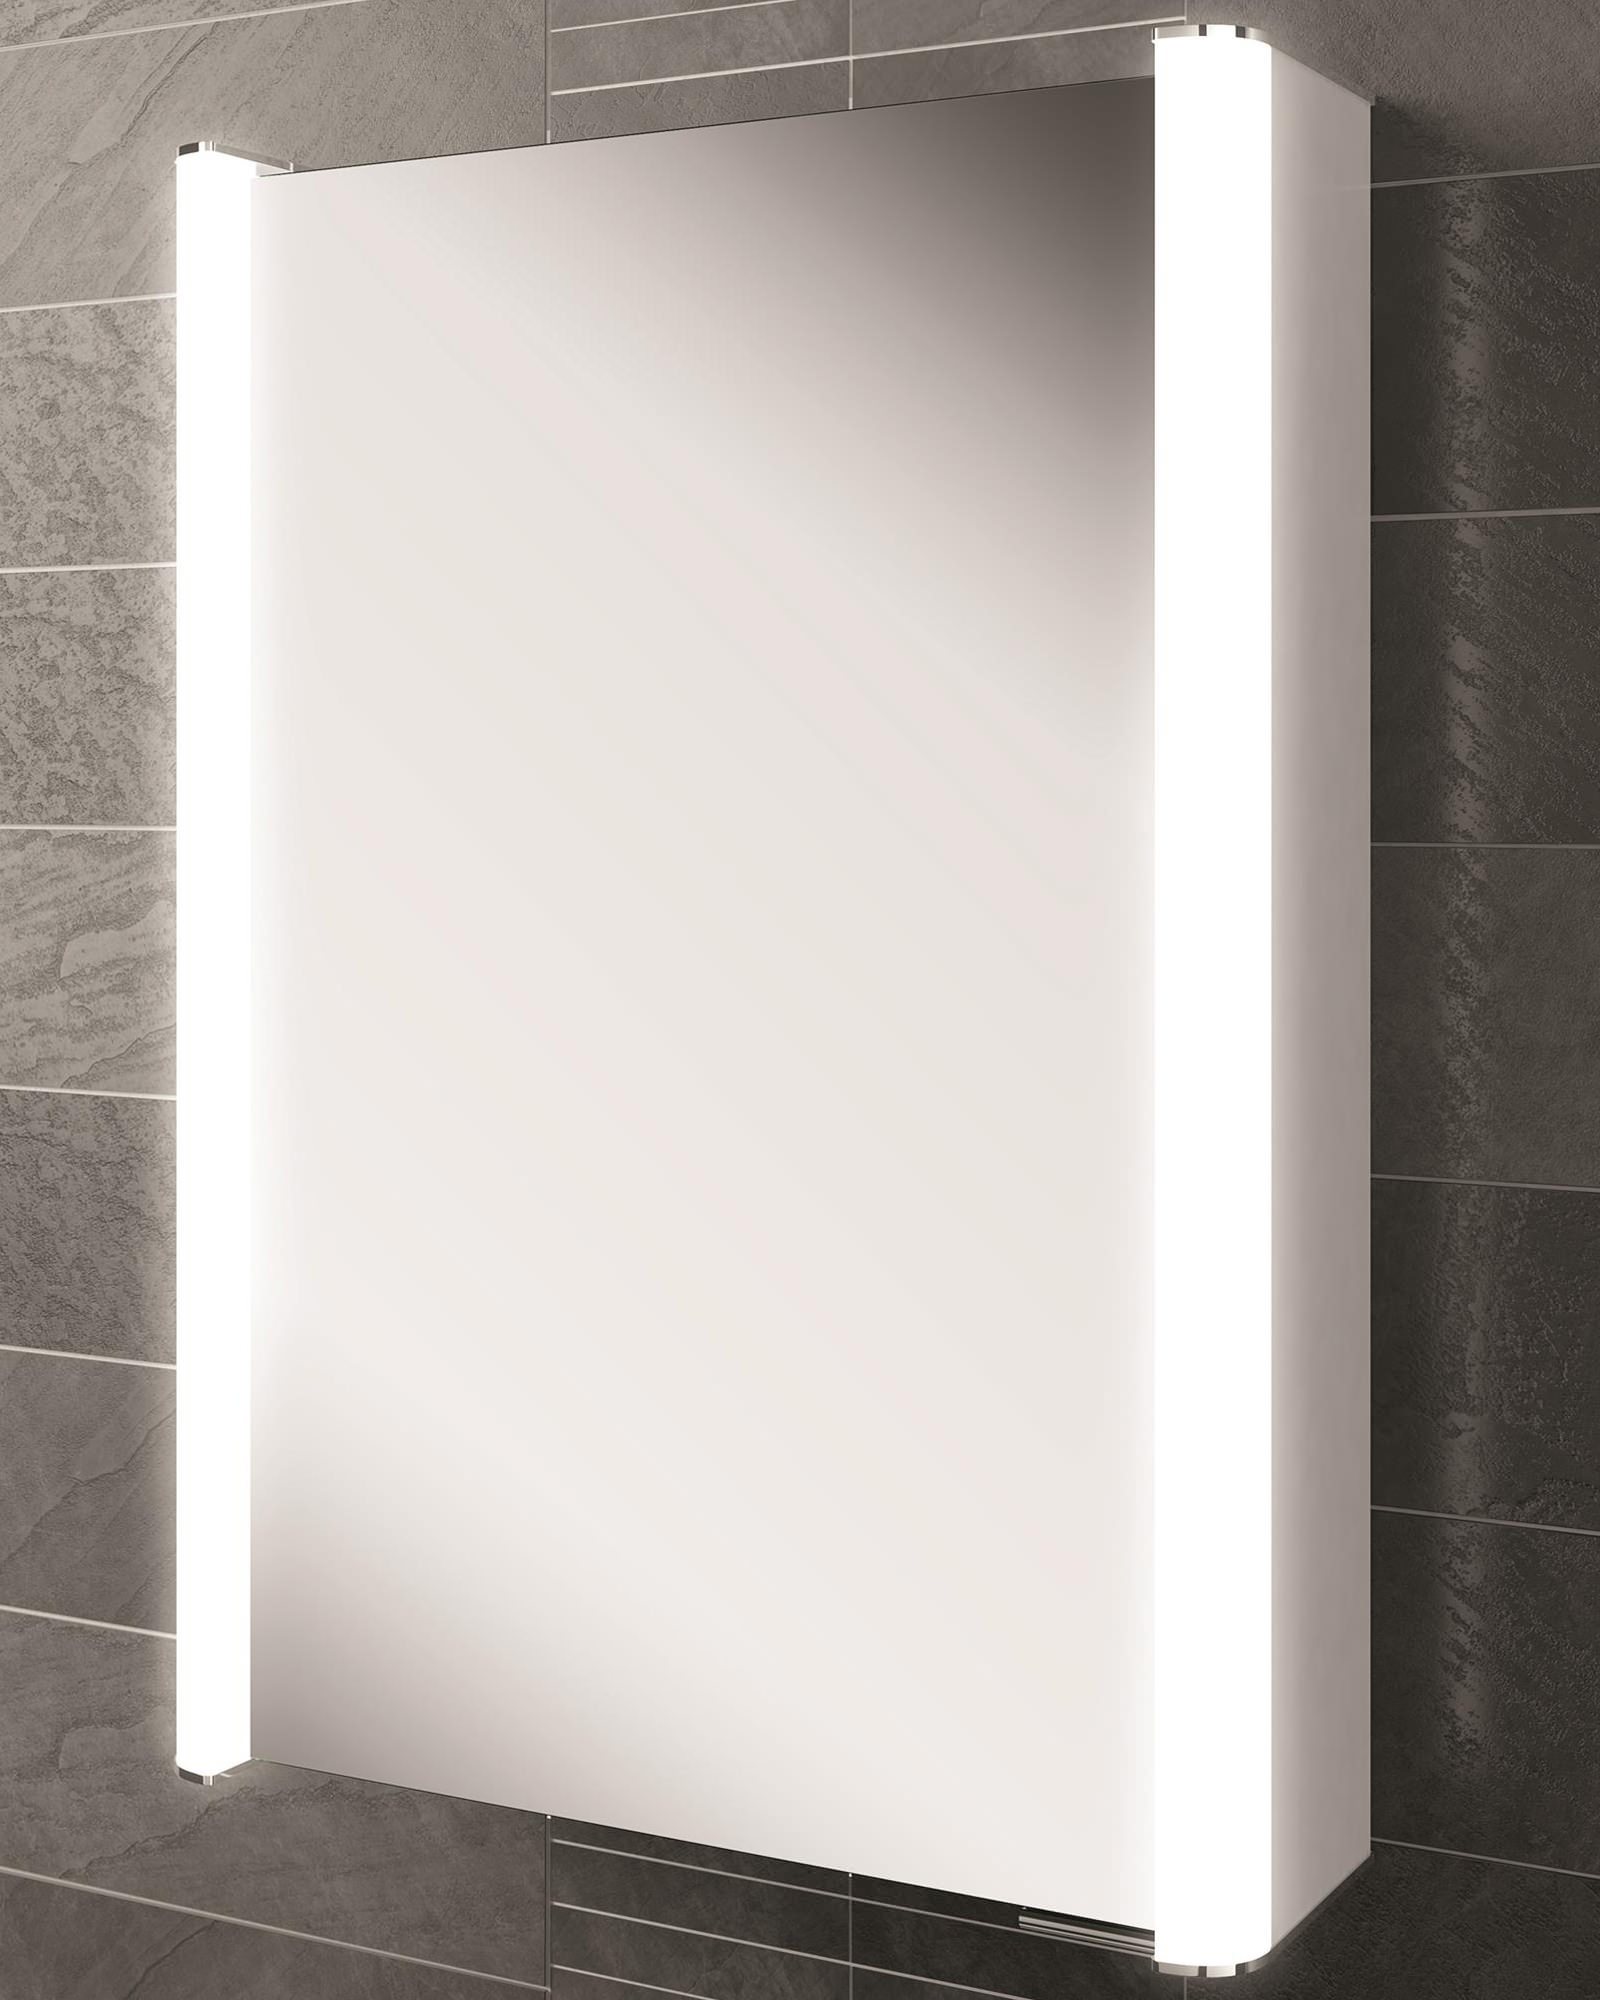 HIB Vita 50 Single Door LED Illuminated Mirror Cabinet 500 X 700mm